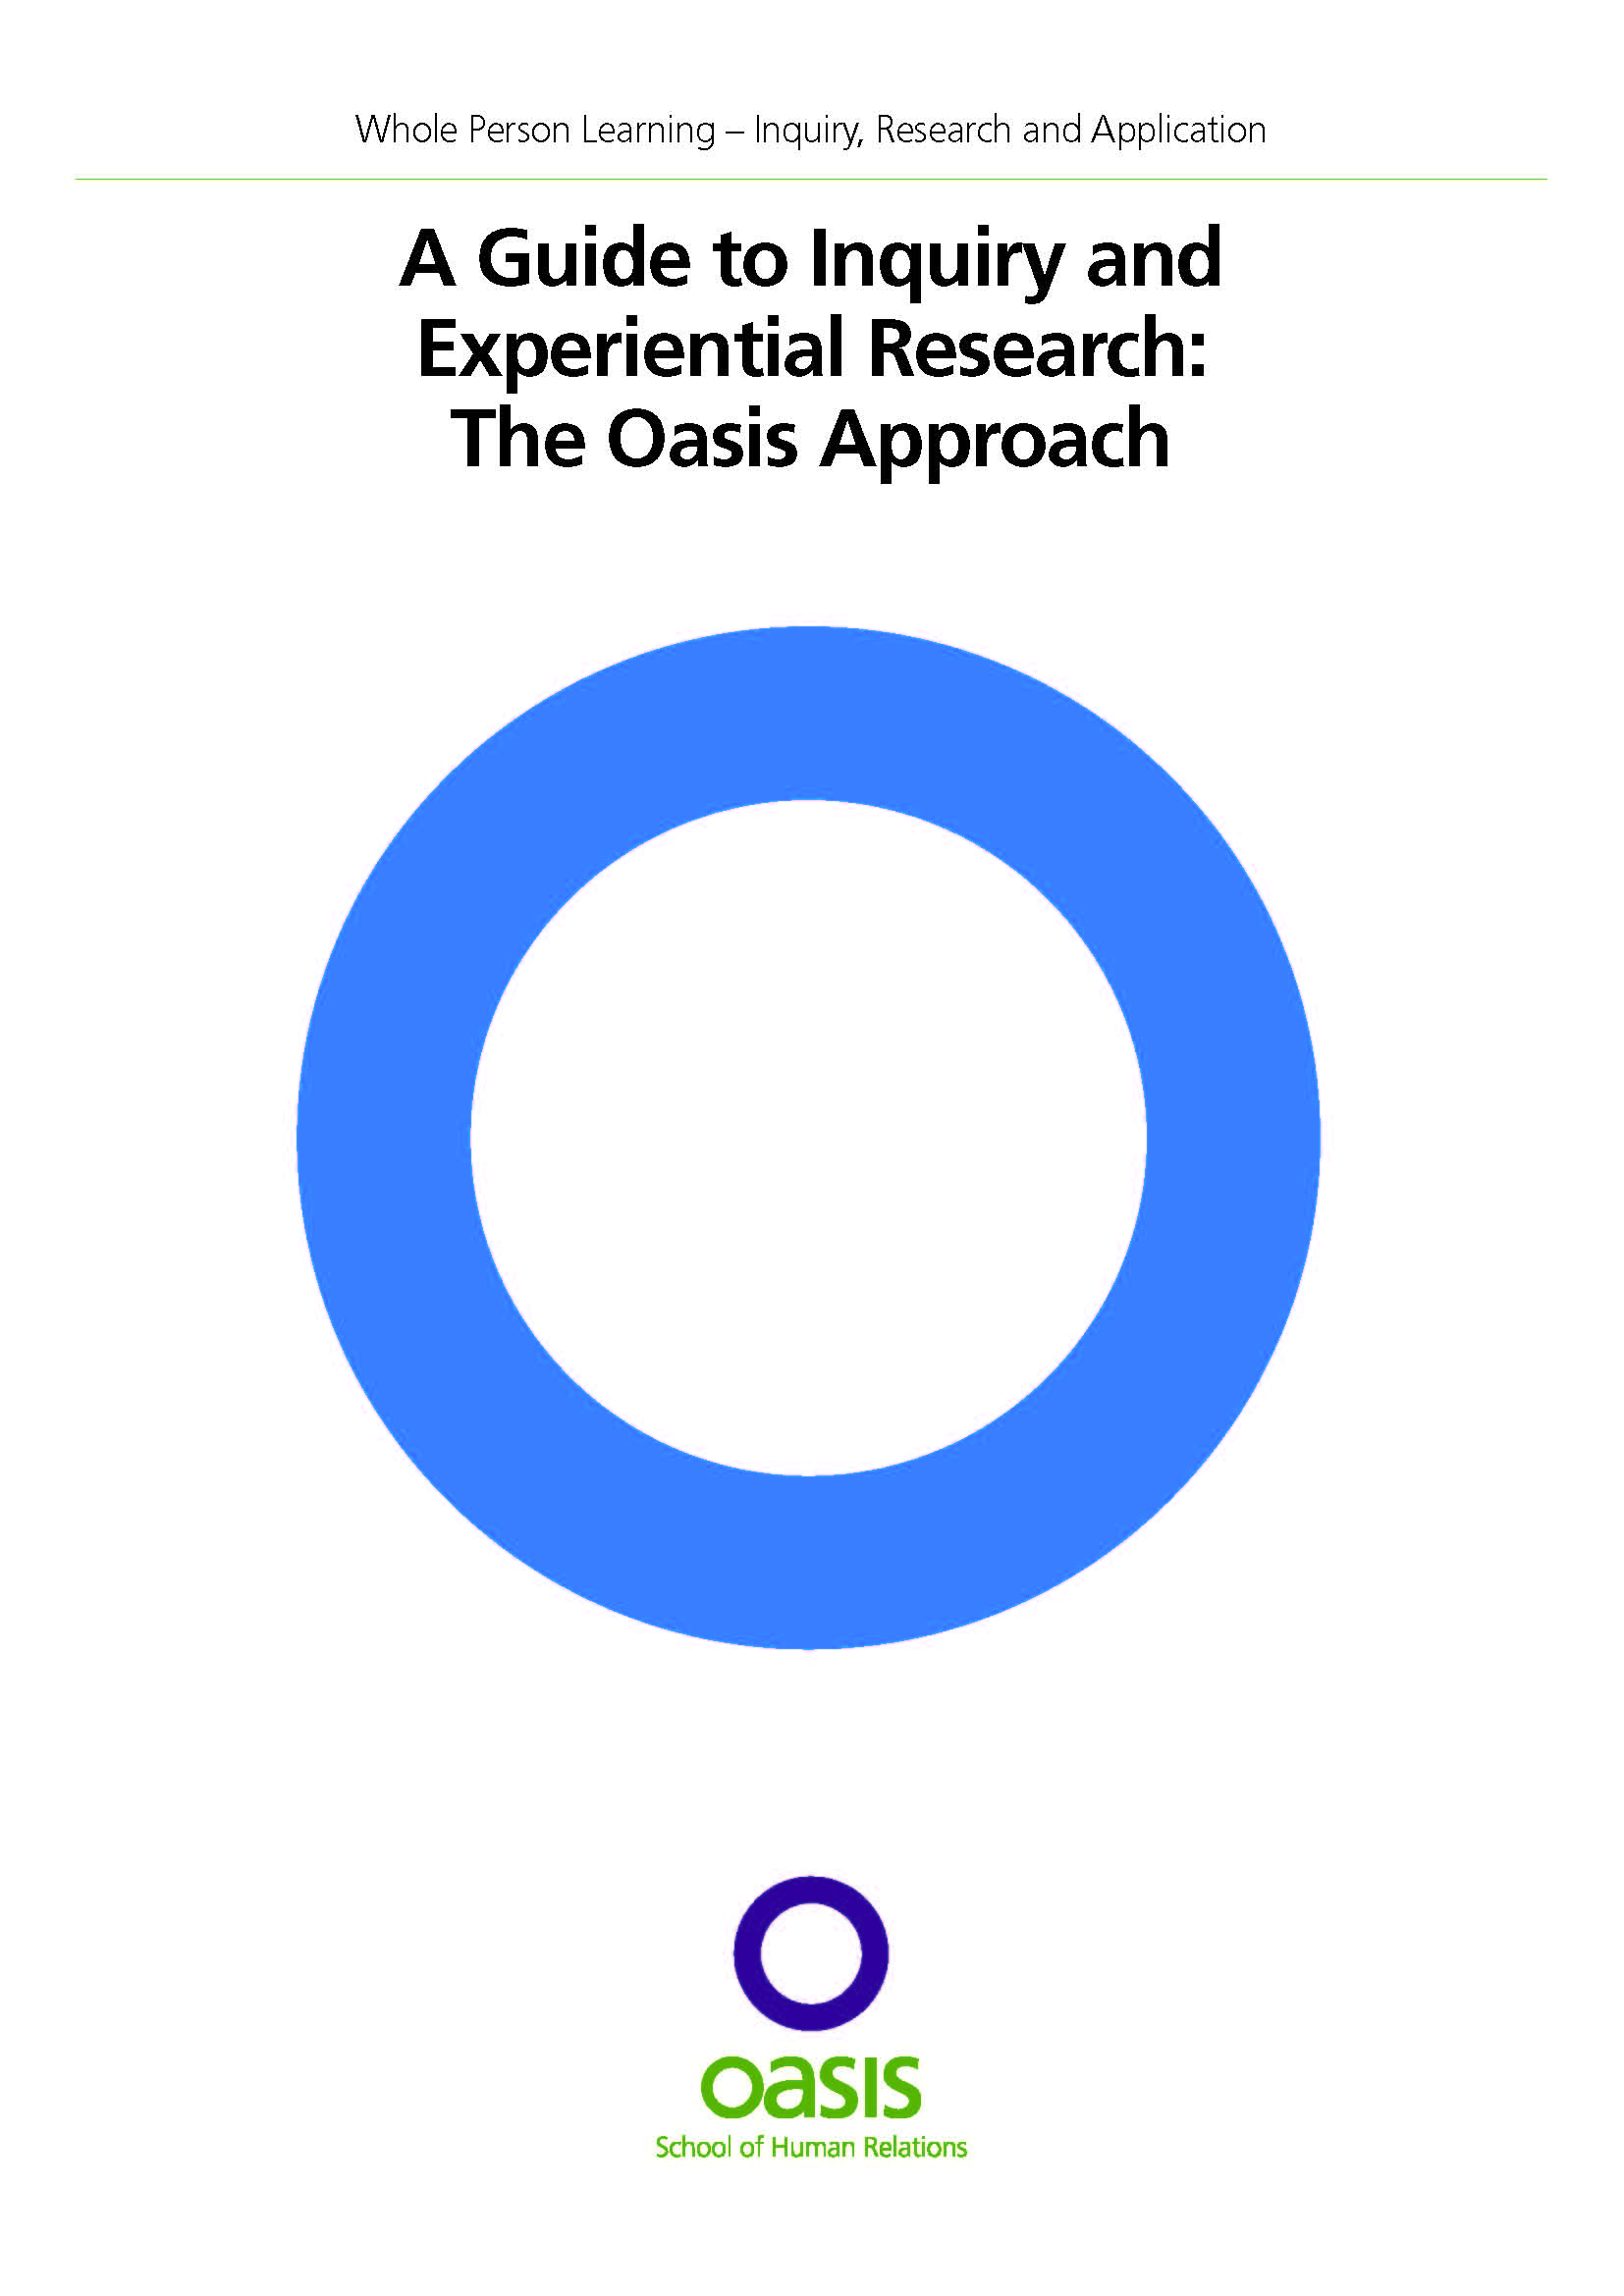 A Guide to Inquiry and Experiential Research: The Oasis Approach